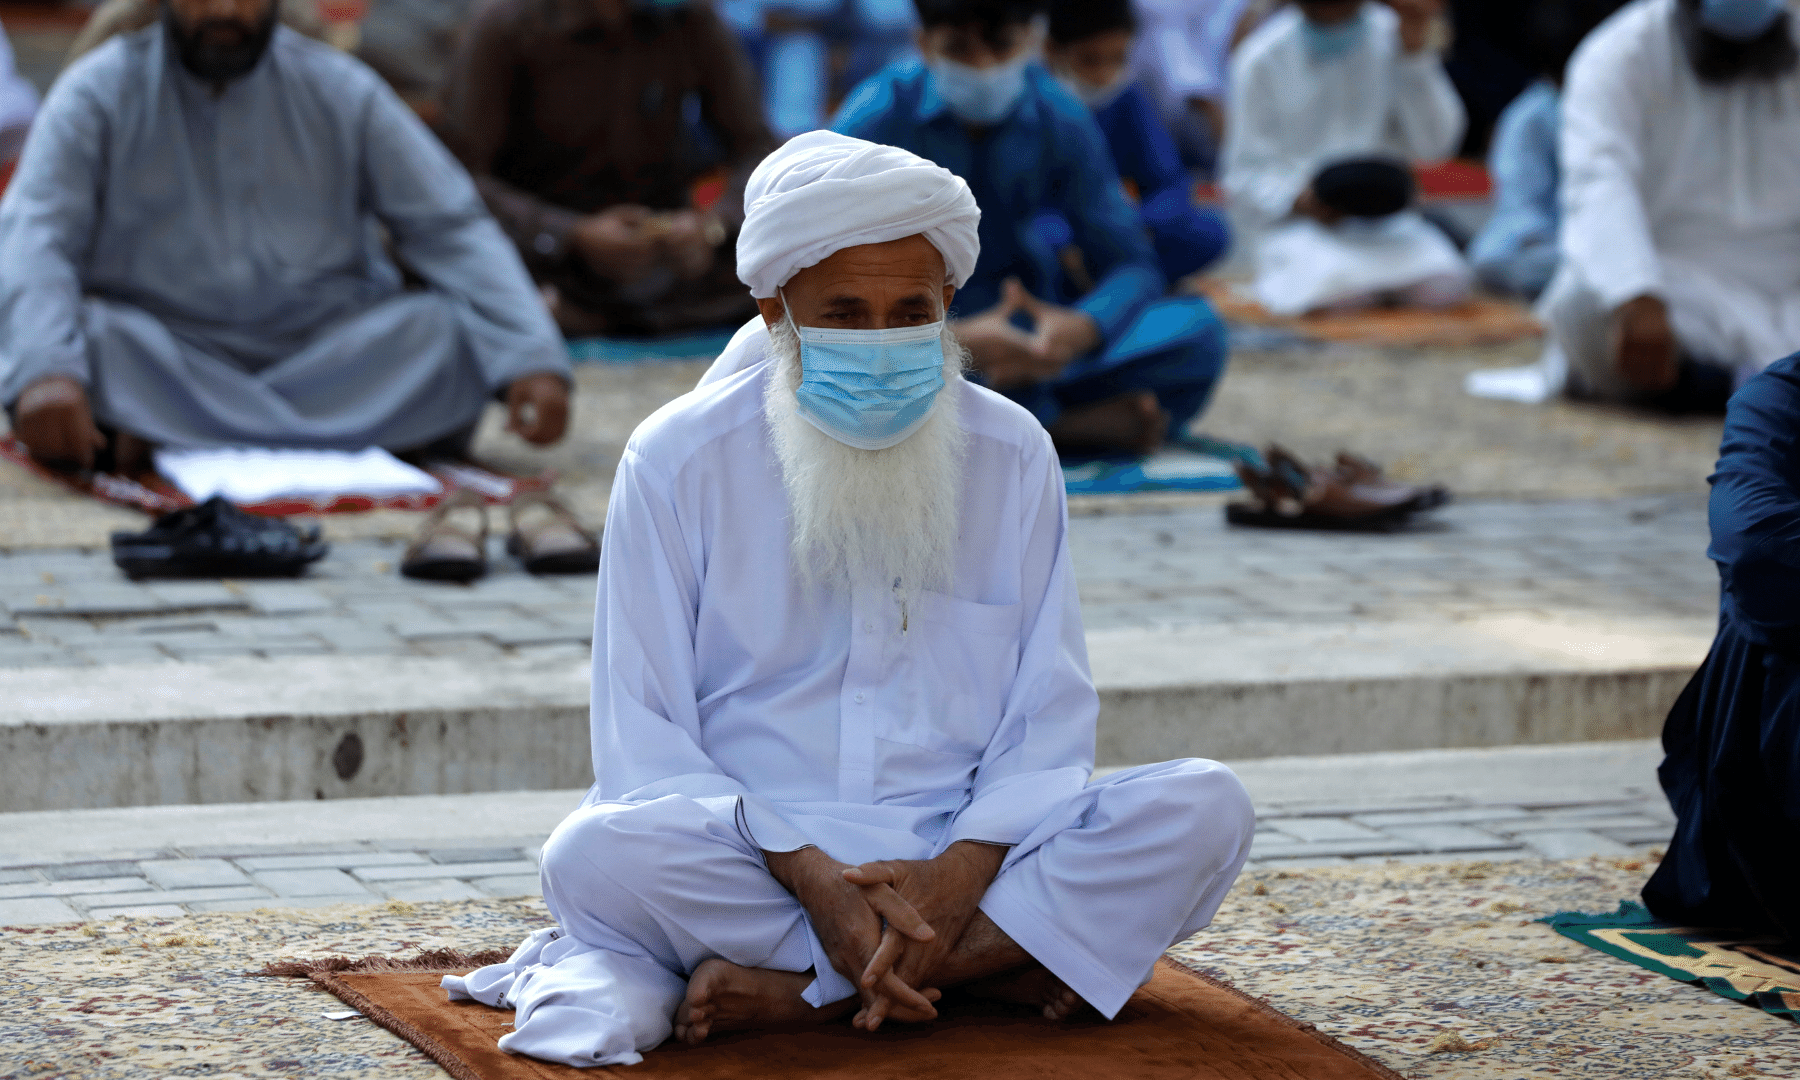 A man wears a protective mask maintaining social distance with others as they gather to for Eidul Fitr prayers in Peshawar on Thursday. — Reuters